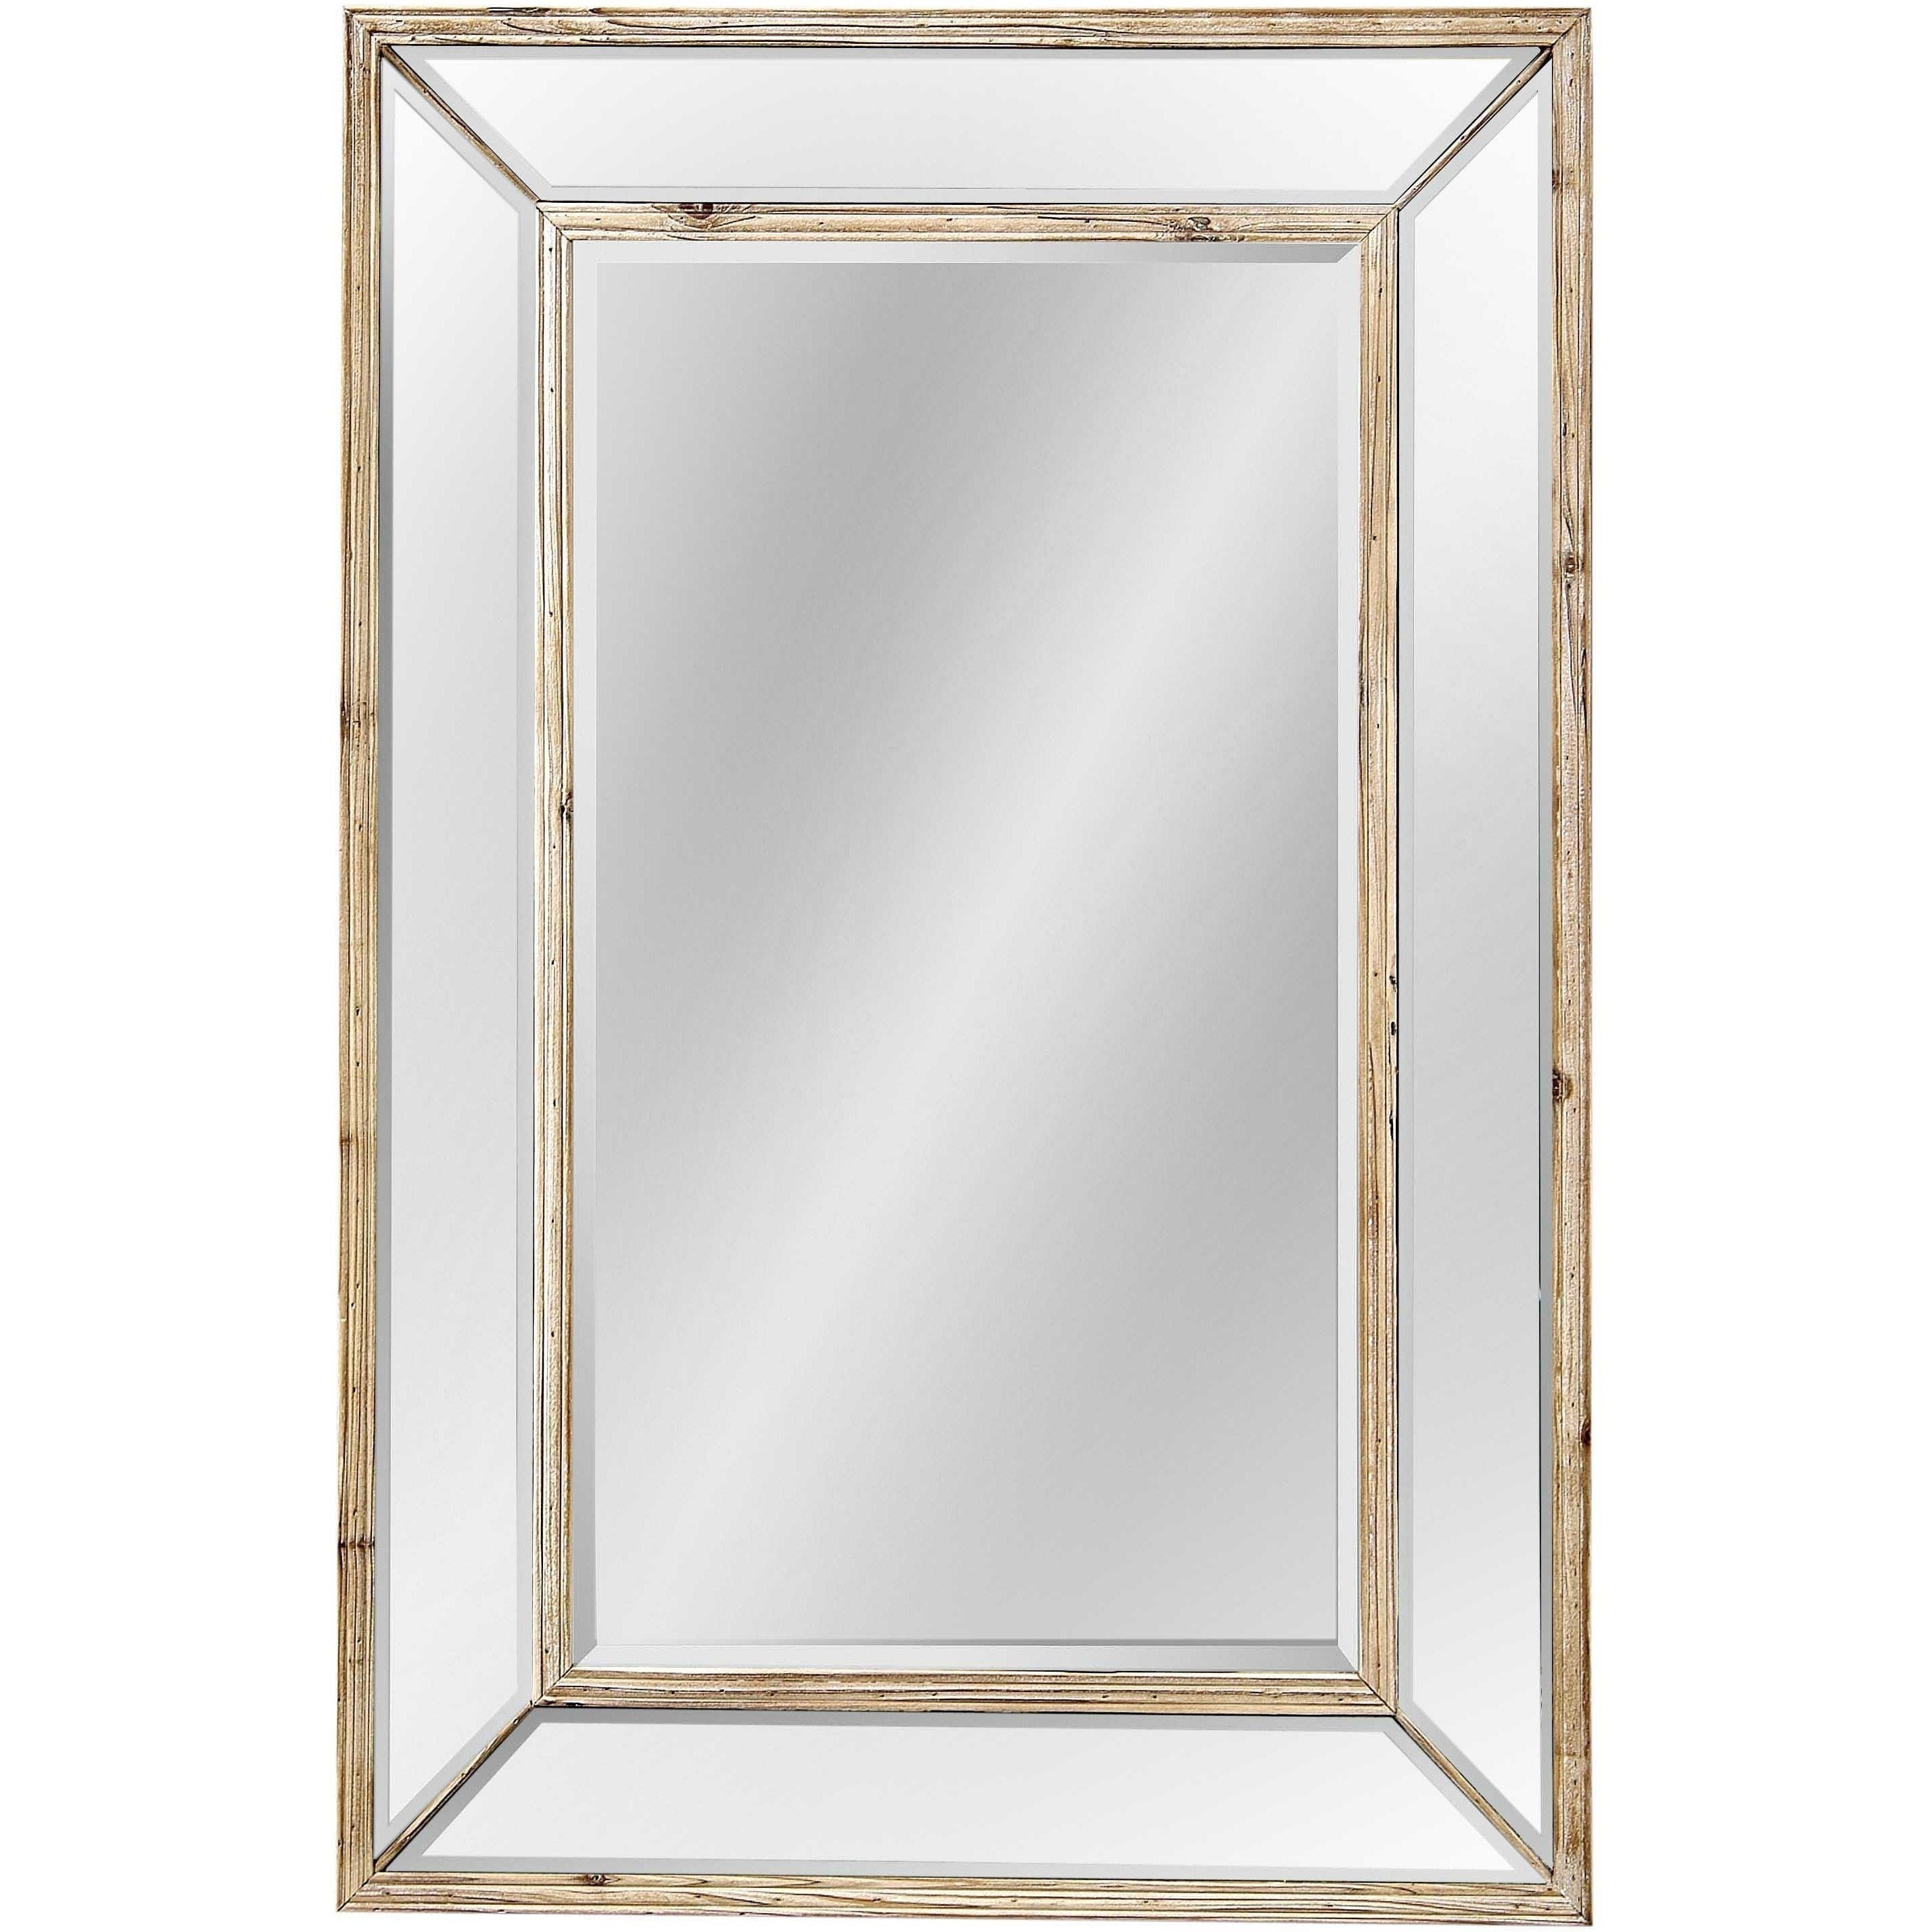 Bassett Pompano Wall Mirror With Brown Pine Frame Pertaining To Most Up To Date Bassett Wall Mirrors (View 9 of 20)